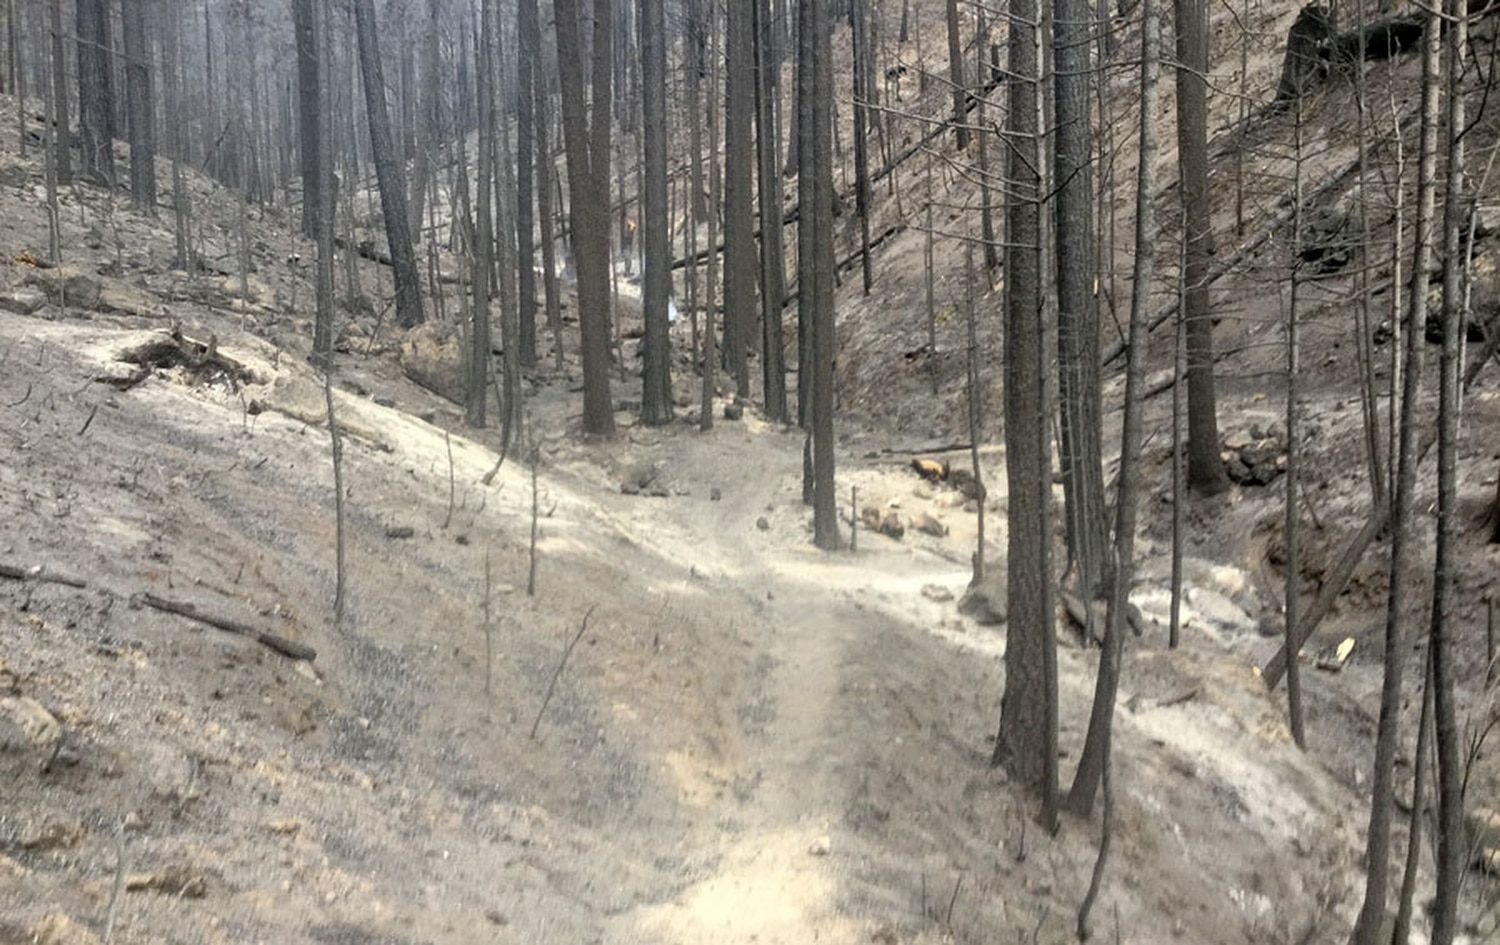 Around 100 acres within the scar of the Medio Fire burned at high severity, leaving nothing but snags and ash behind.